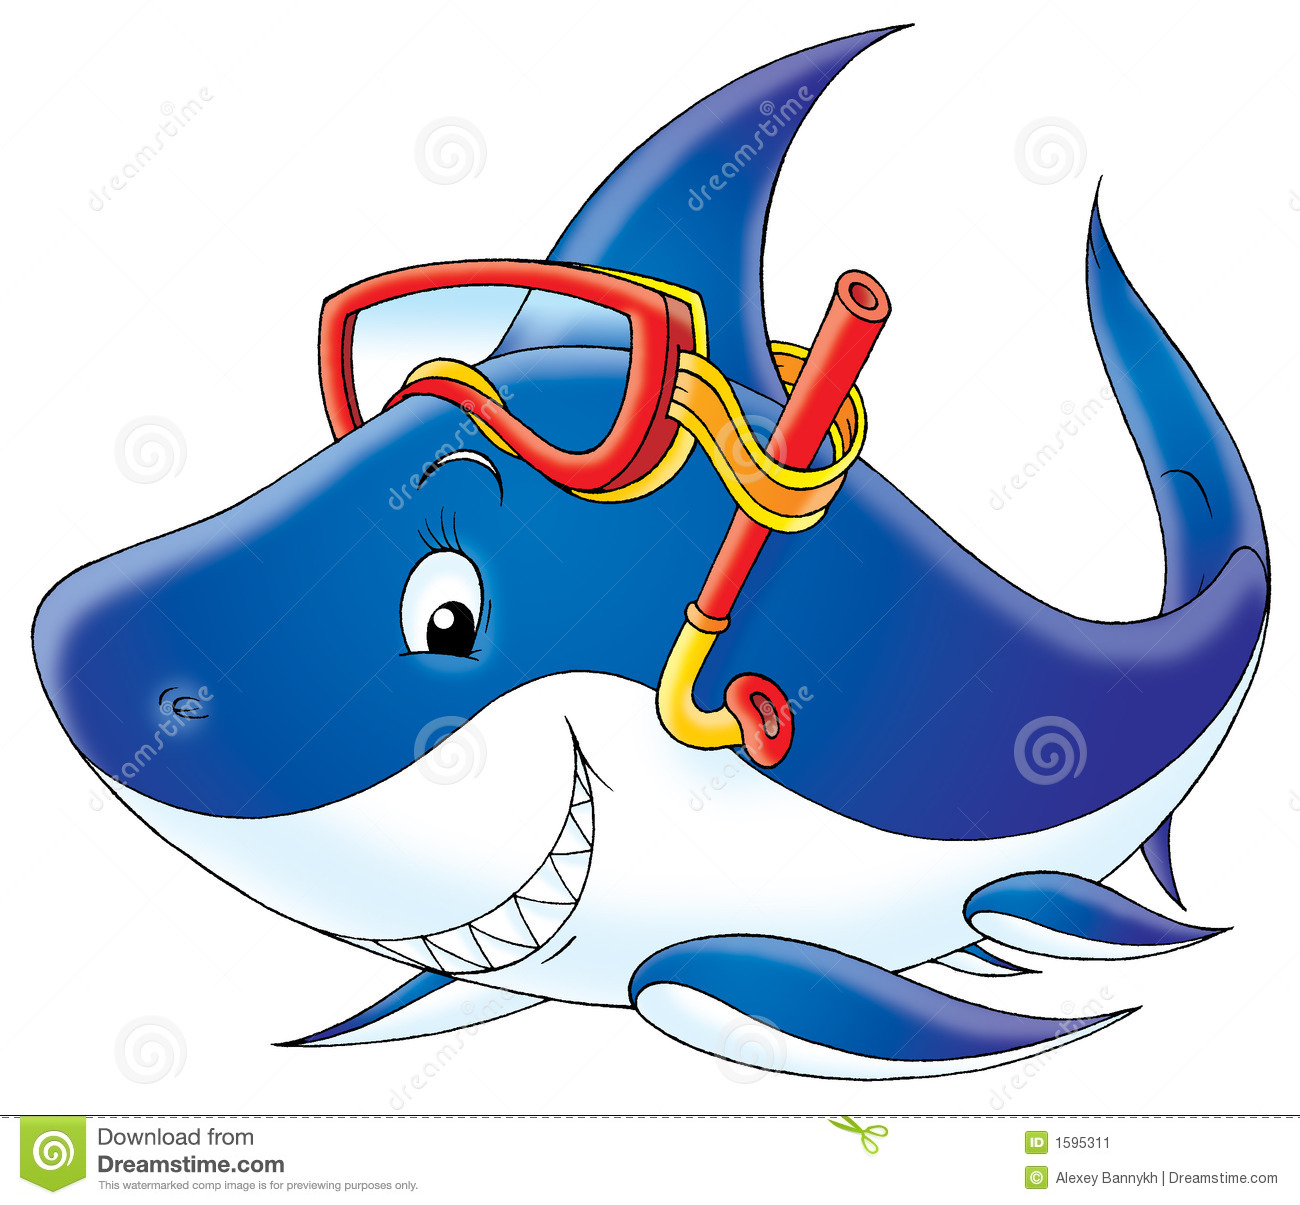 Clipart shark happy. Bull cute face pencil